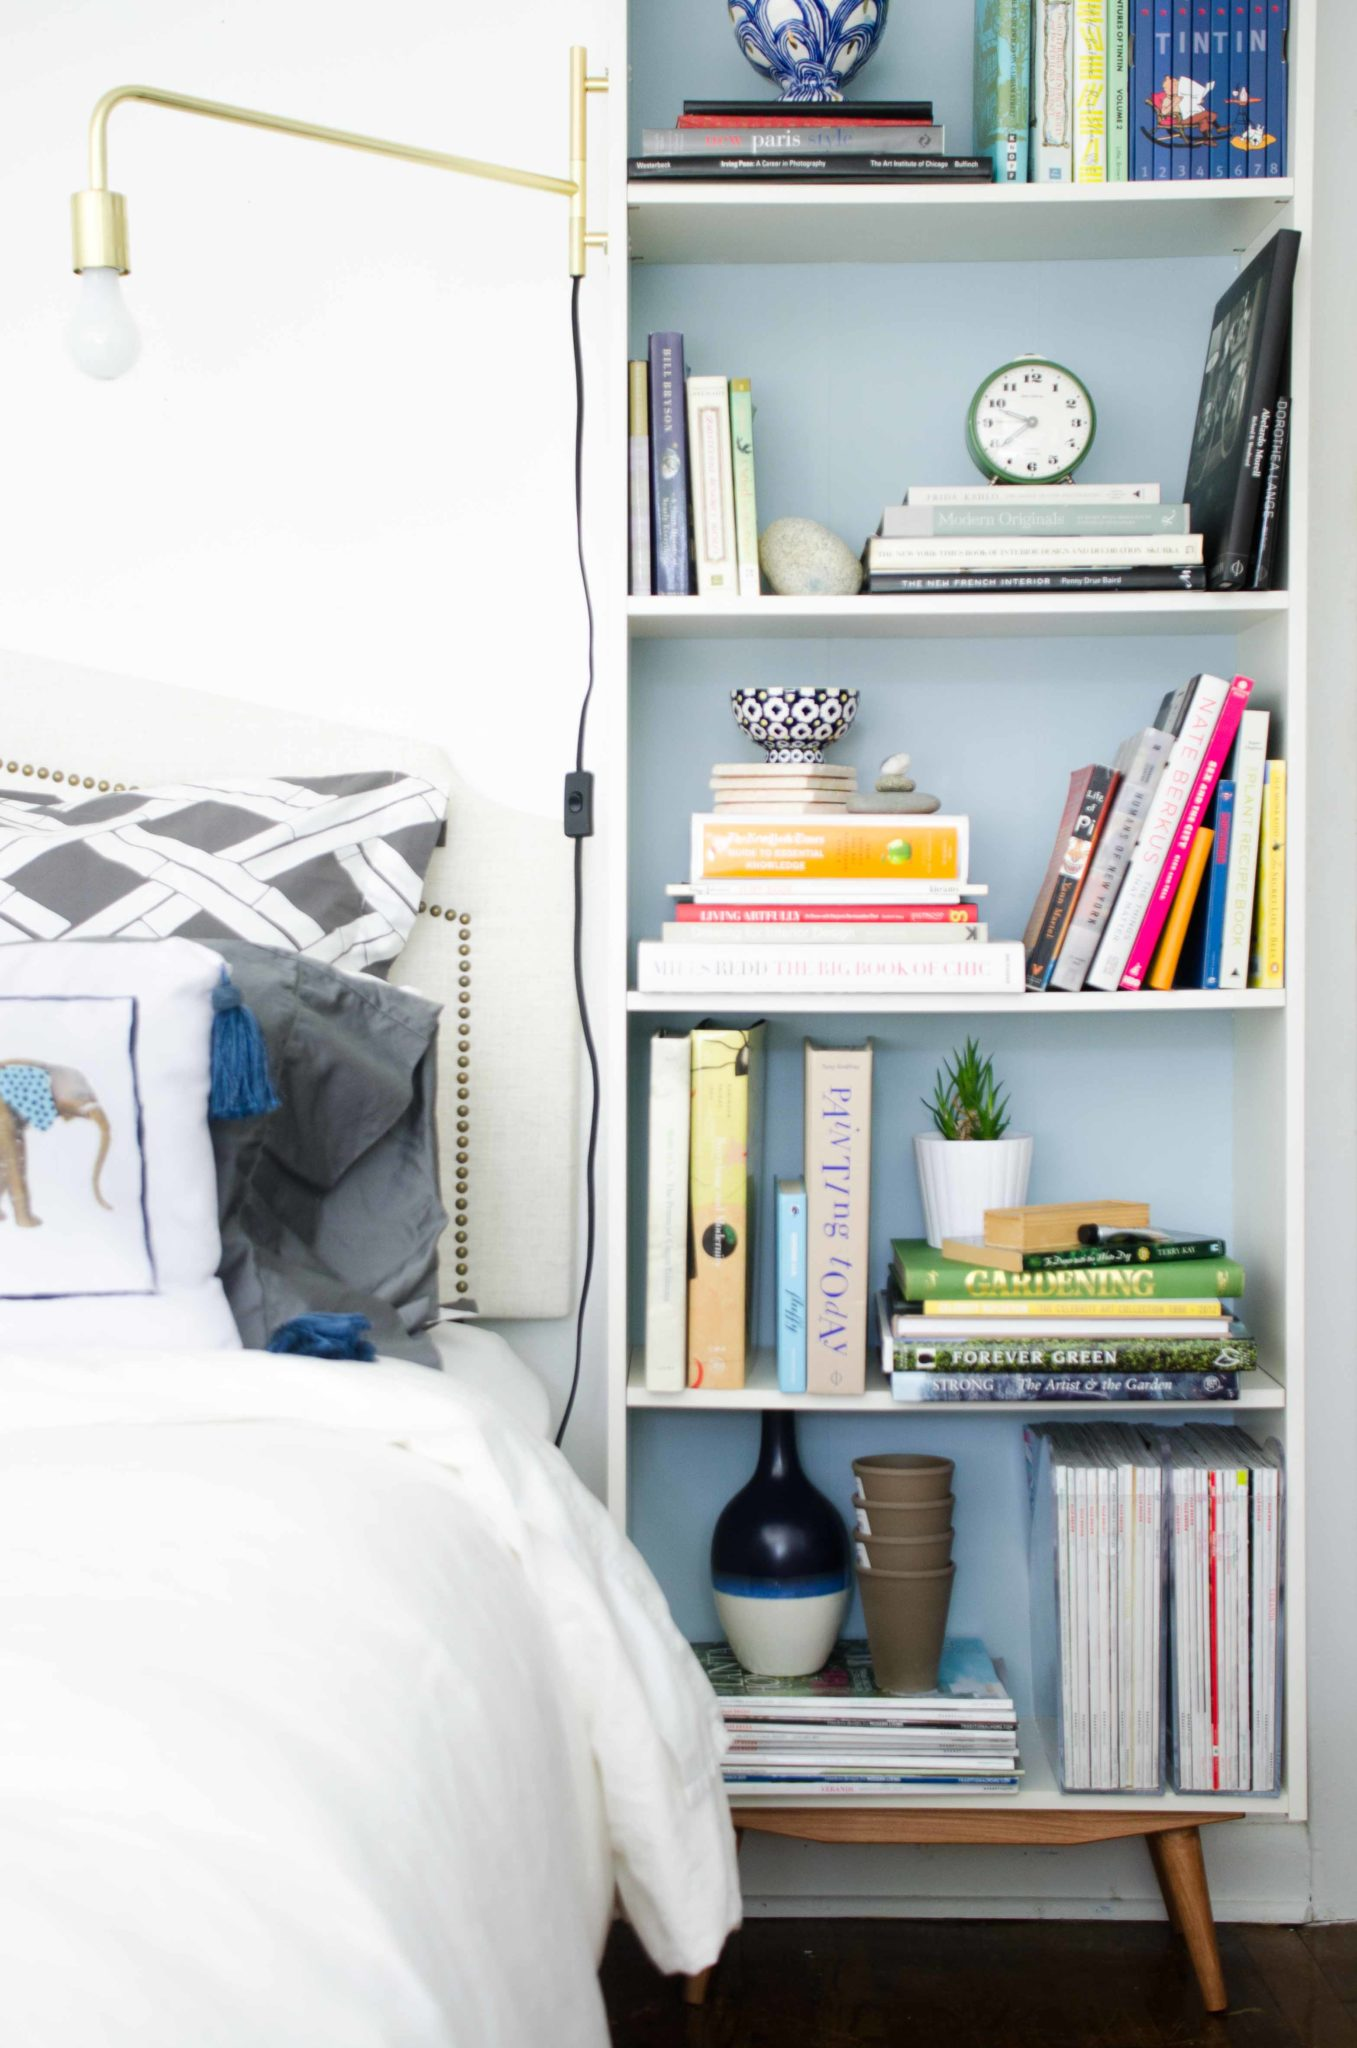 Mid century bookcase with brass swing arm sconce in a modern bedroom